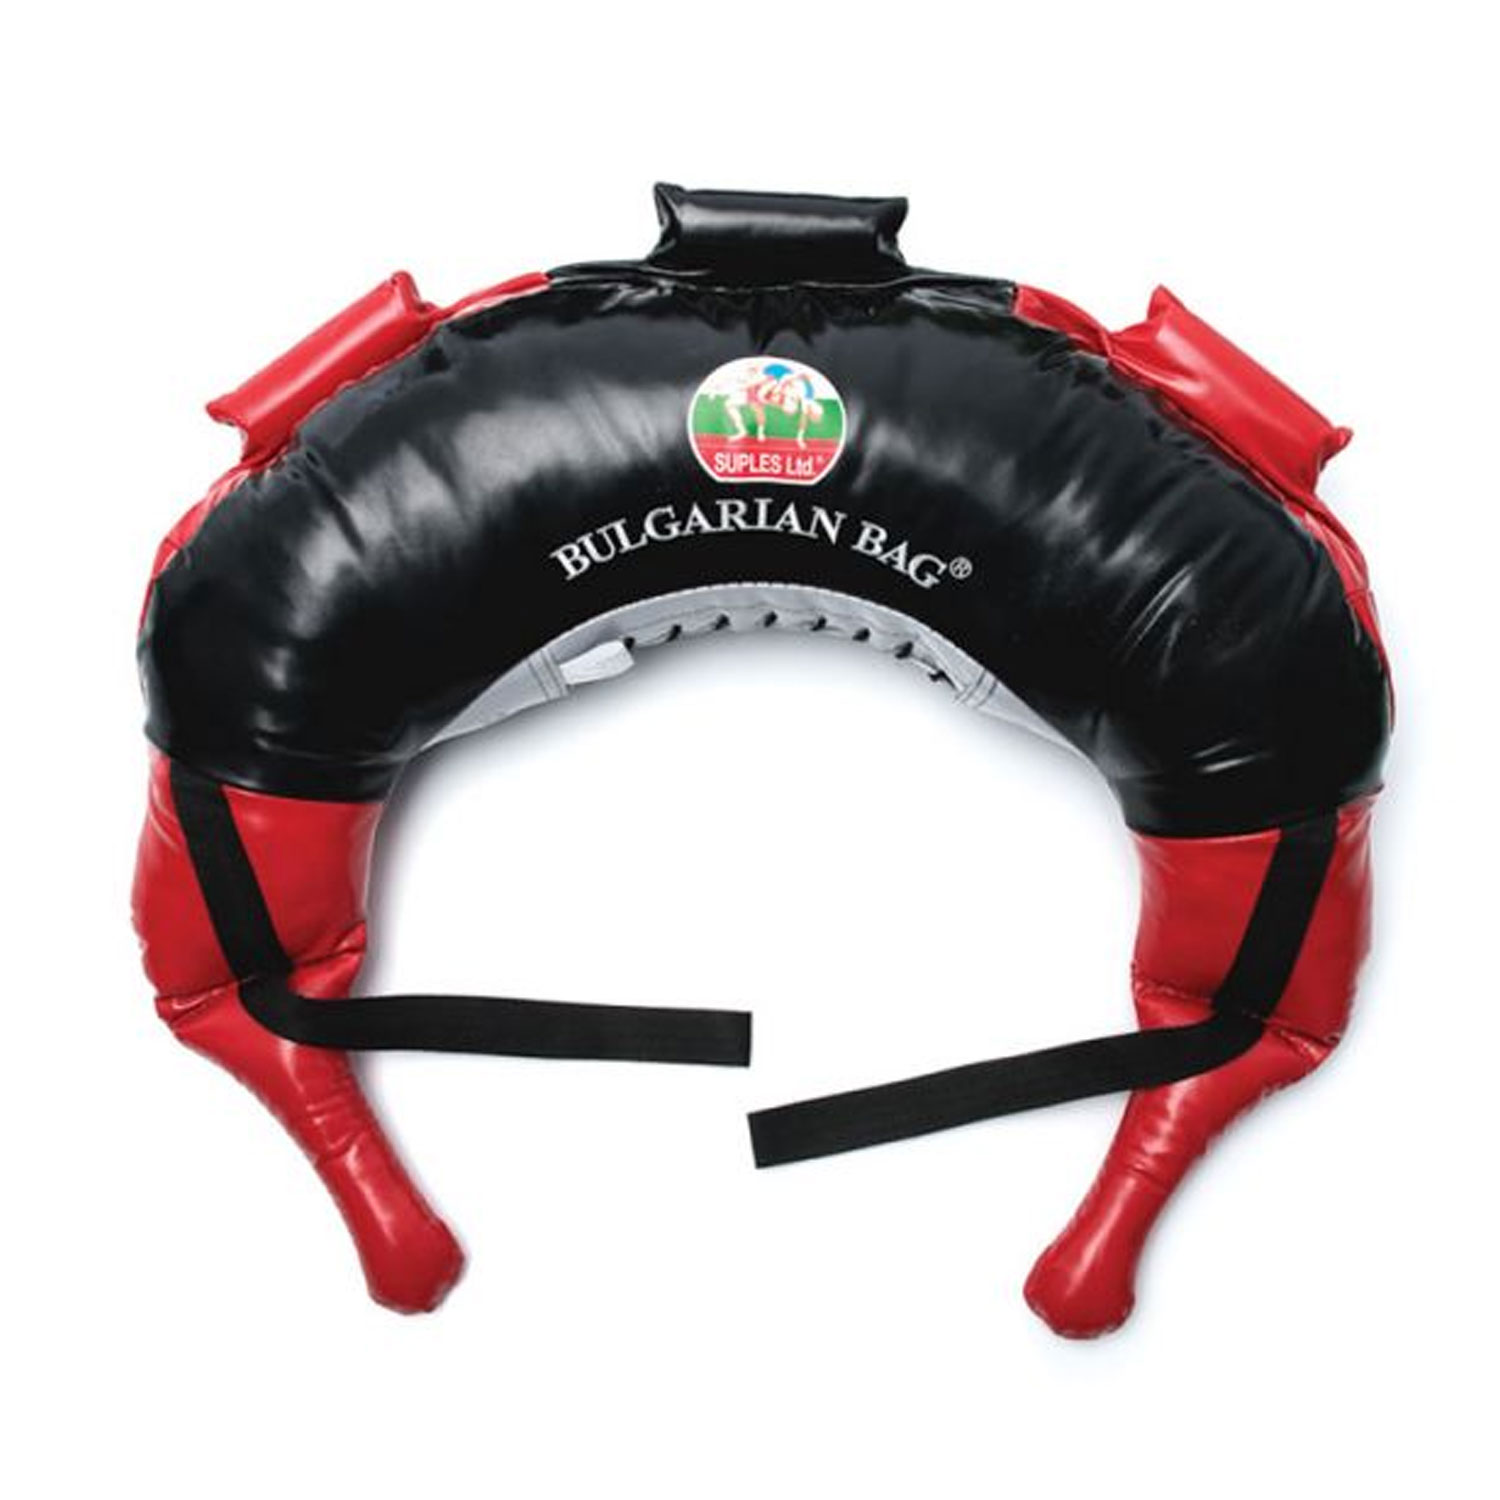 Red Escape Fitness Suples 26 Pound Bulgarian Bag Training Workout Equipment